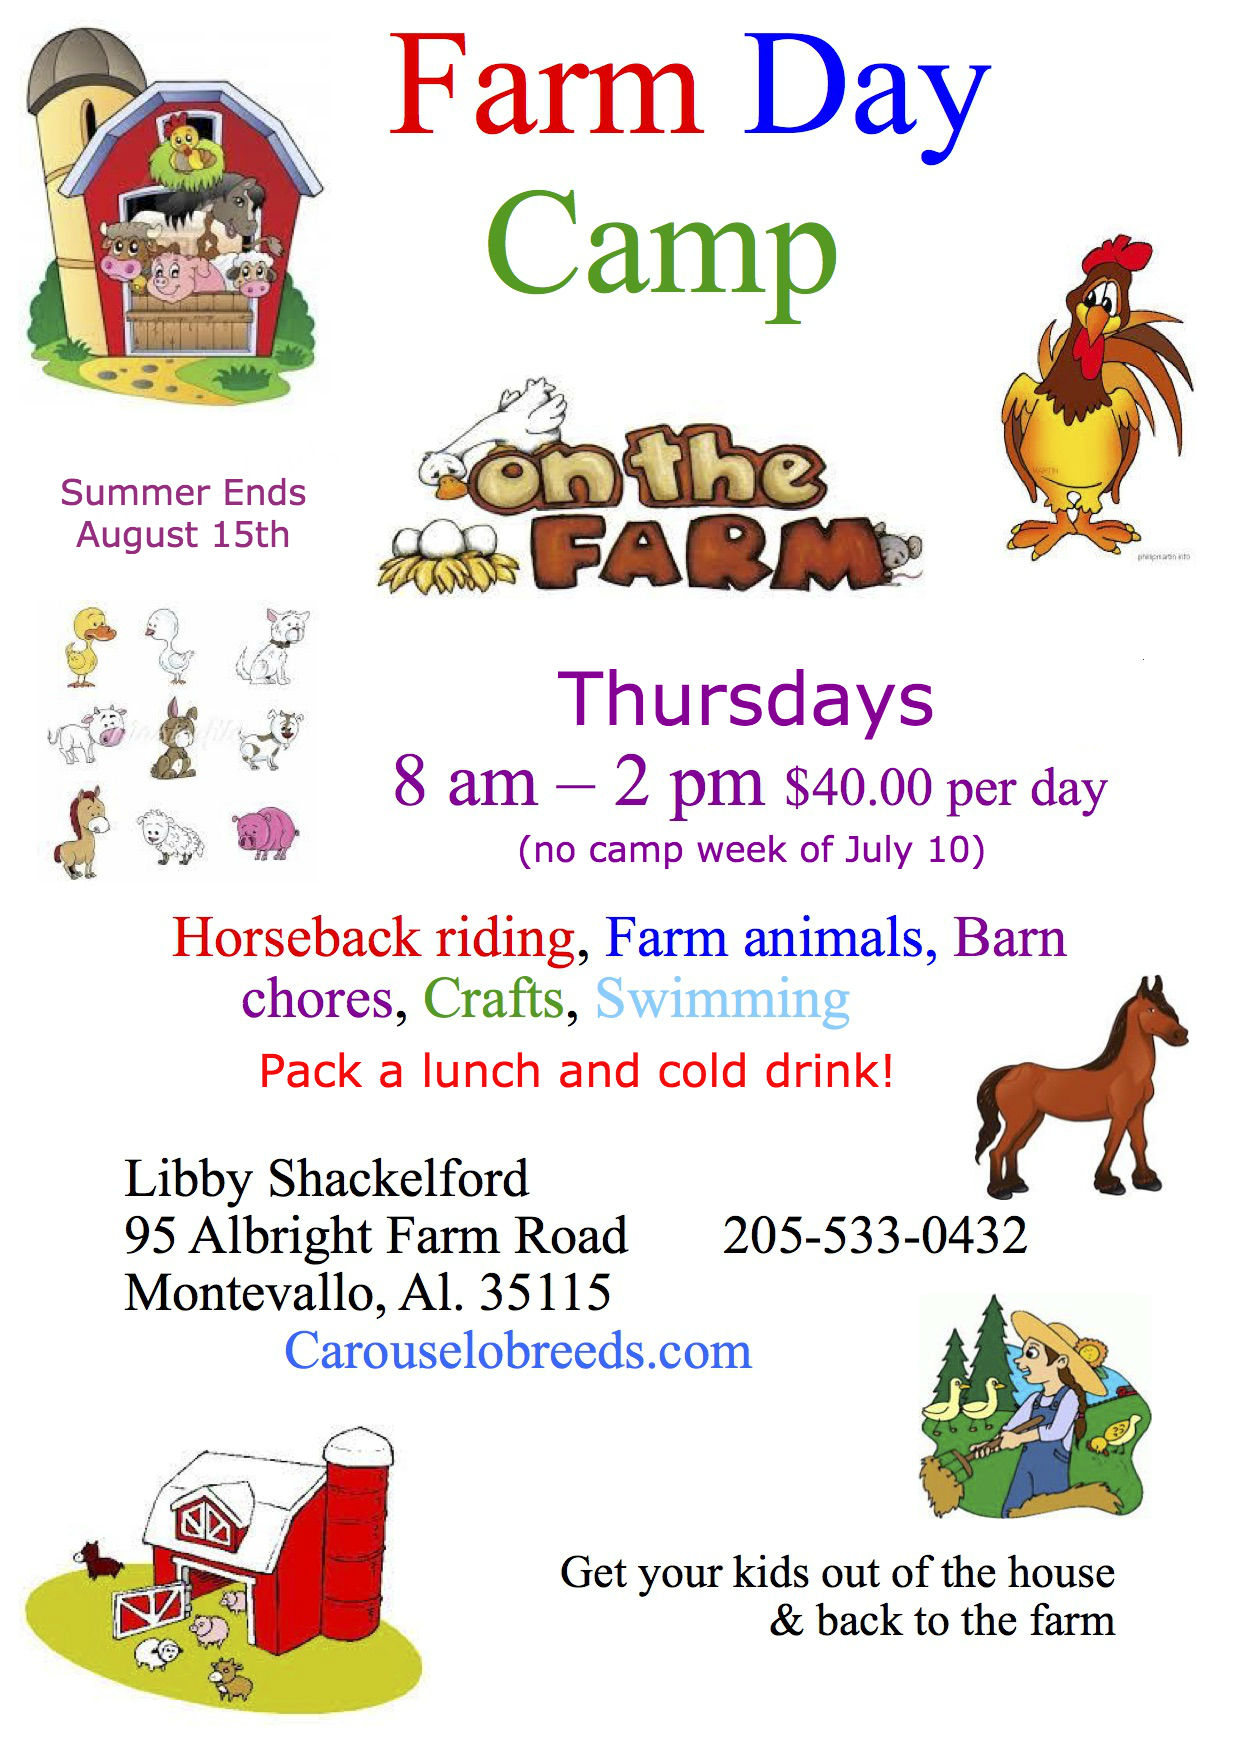 Carouselobreeds.com Farm Day Camp